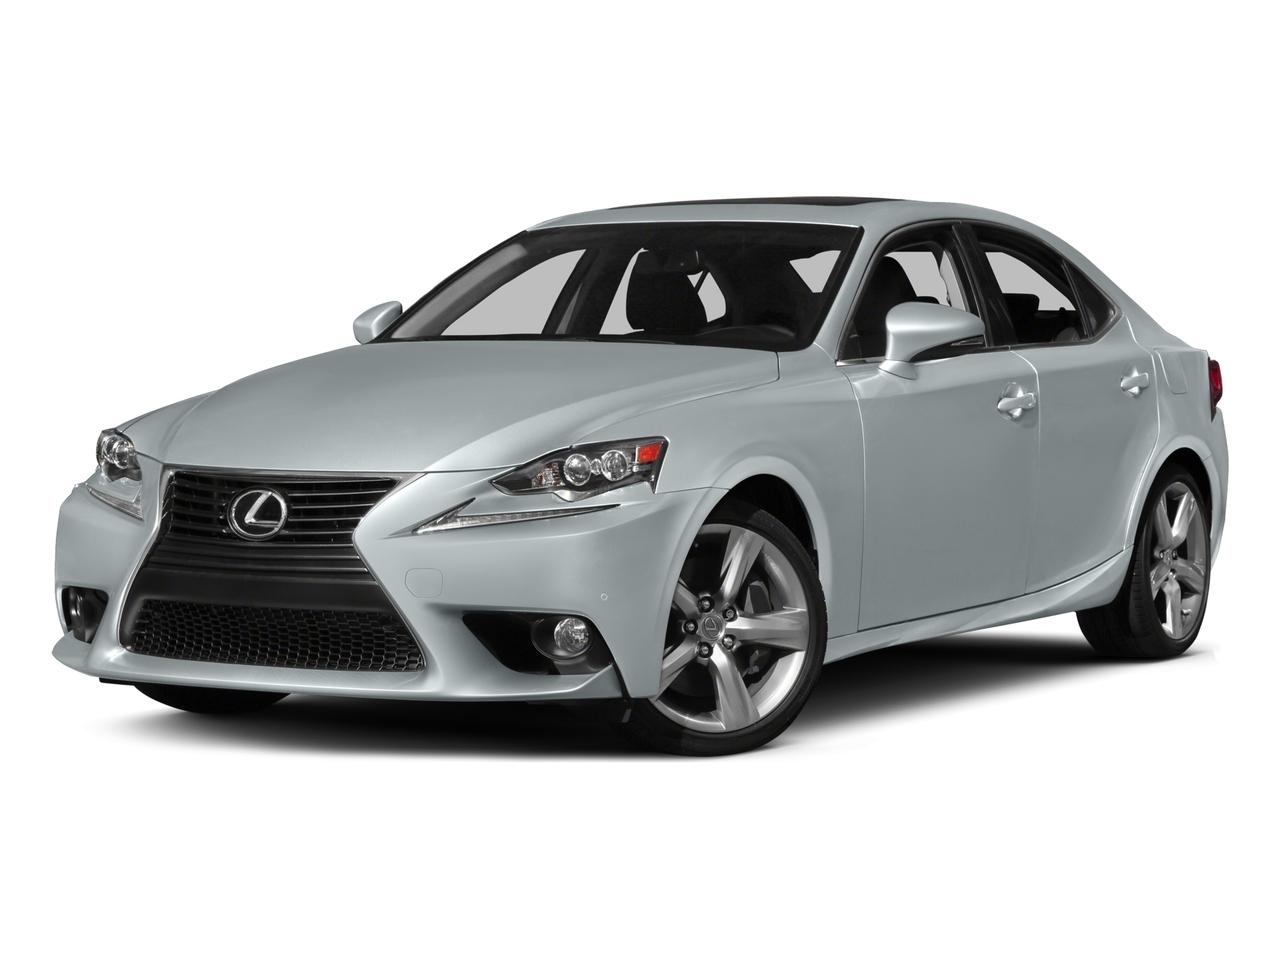 2015 Lexus IS 350 Vehicle Photo in San Antonio, TX 78230